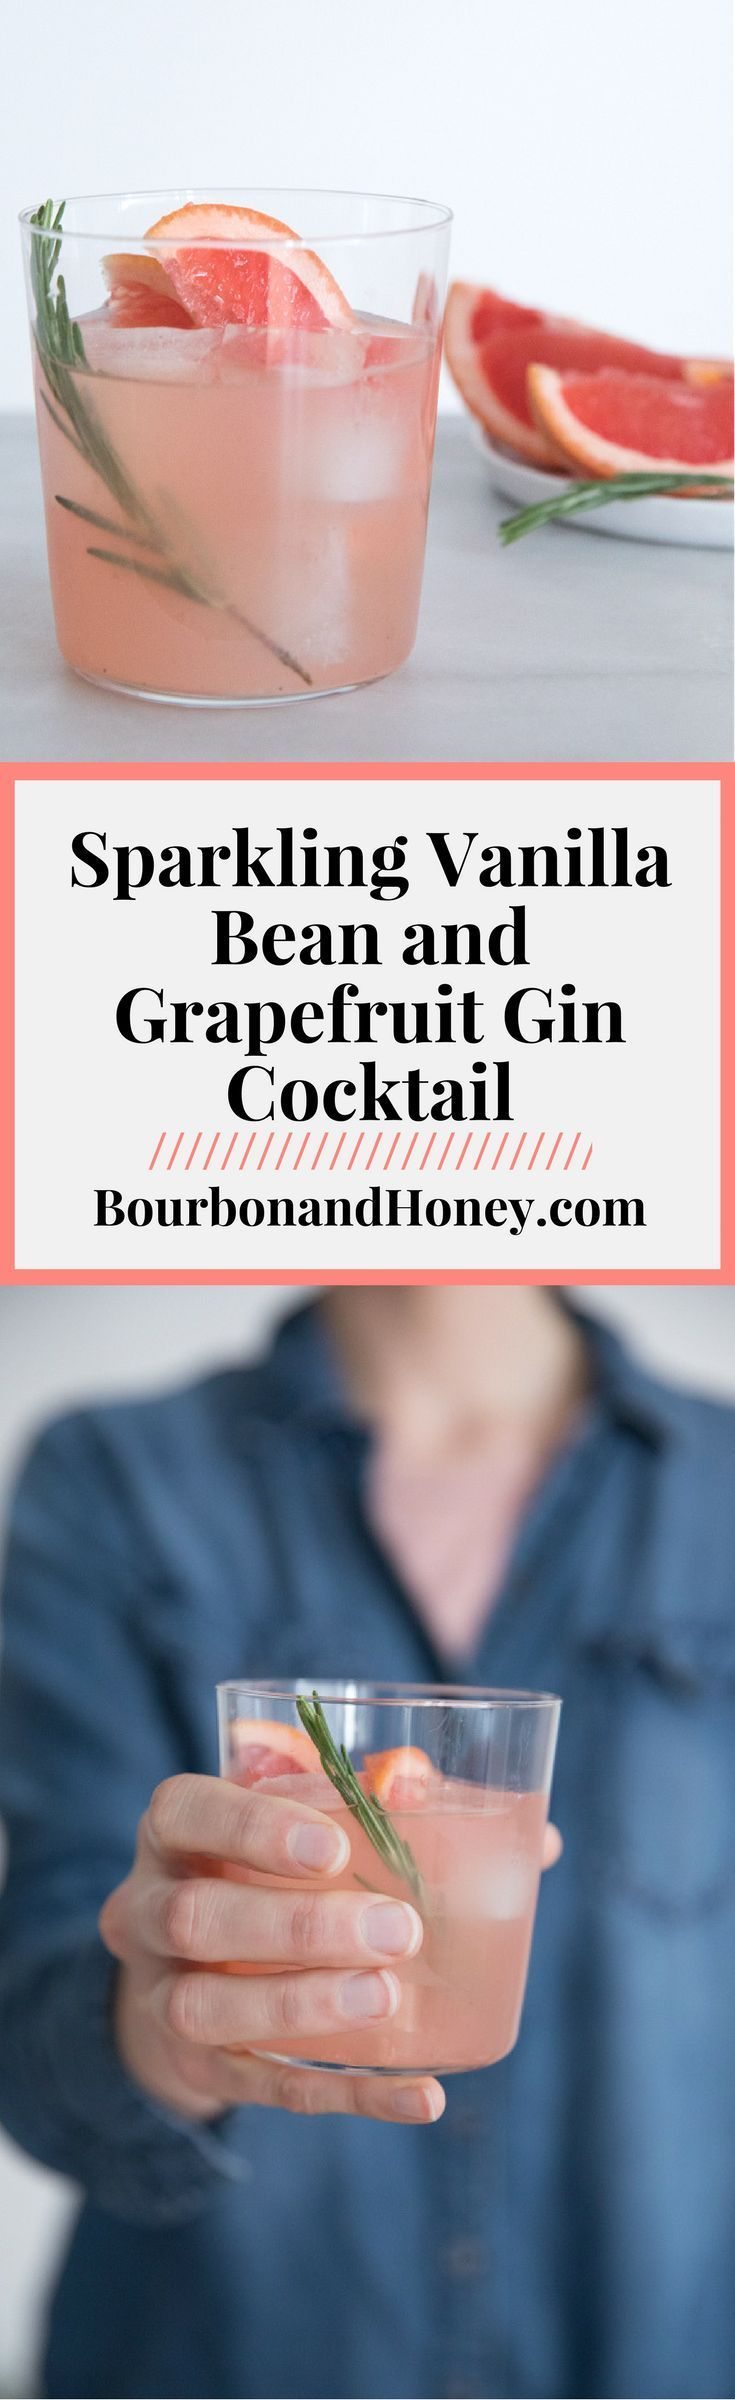 Sparkling Vanilla and Grapefruit Gin Cocktail {Video} | BourbonandHoney.com --   Light, fresh and bubbly, thisSparkling Vanilla and Grapefruit Gin Cocktail recipe is the perfect drink for a brunch or sunny afternoon! #Gin #Cocktail #Recipe #HappyHour #video  #wineglasswriter #cocktailrecipes